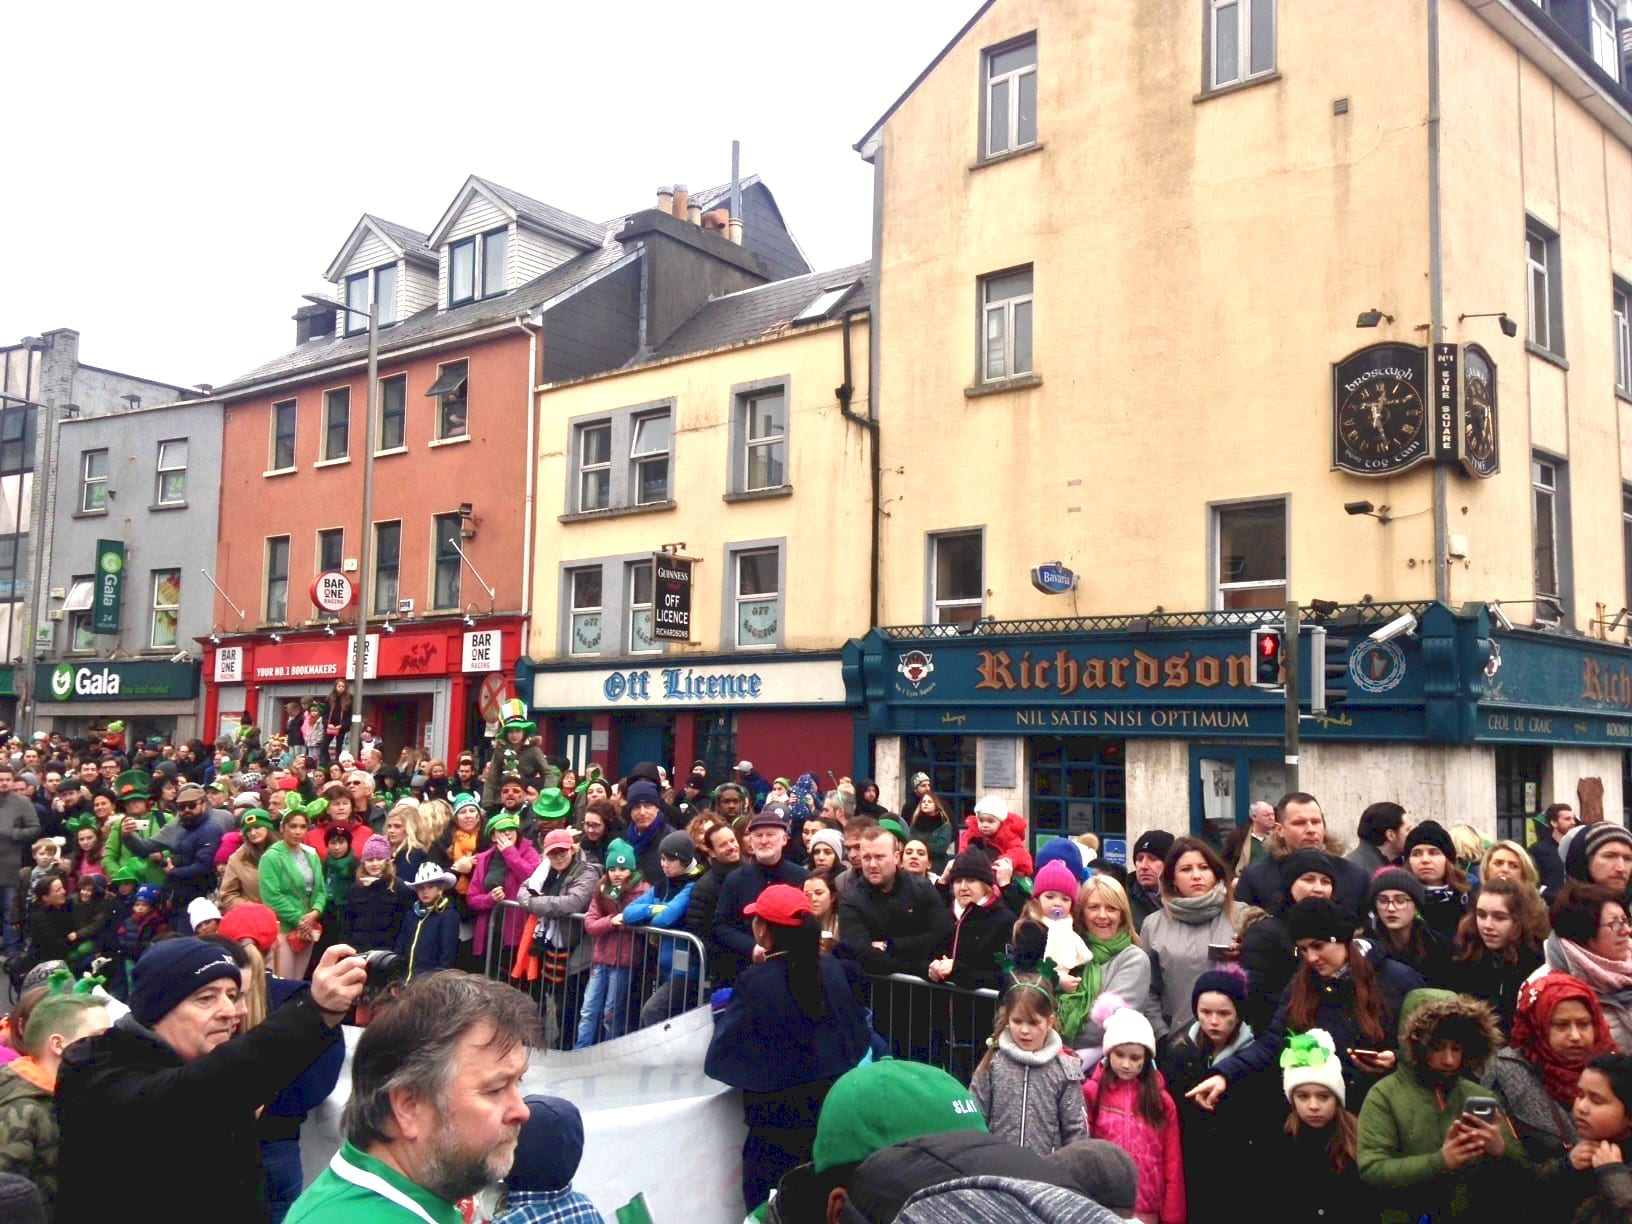 St. Patrick's Day Parade crowd